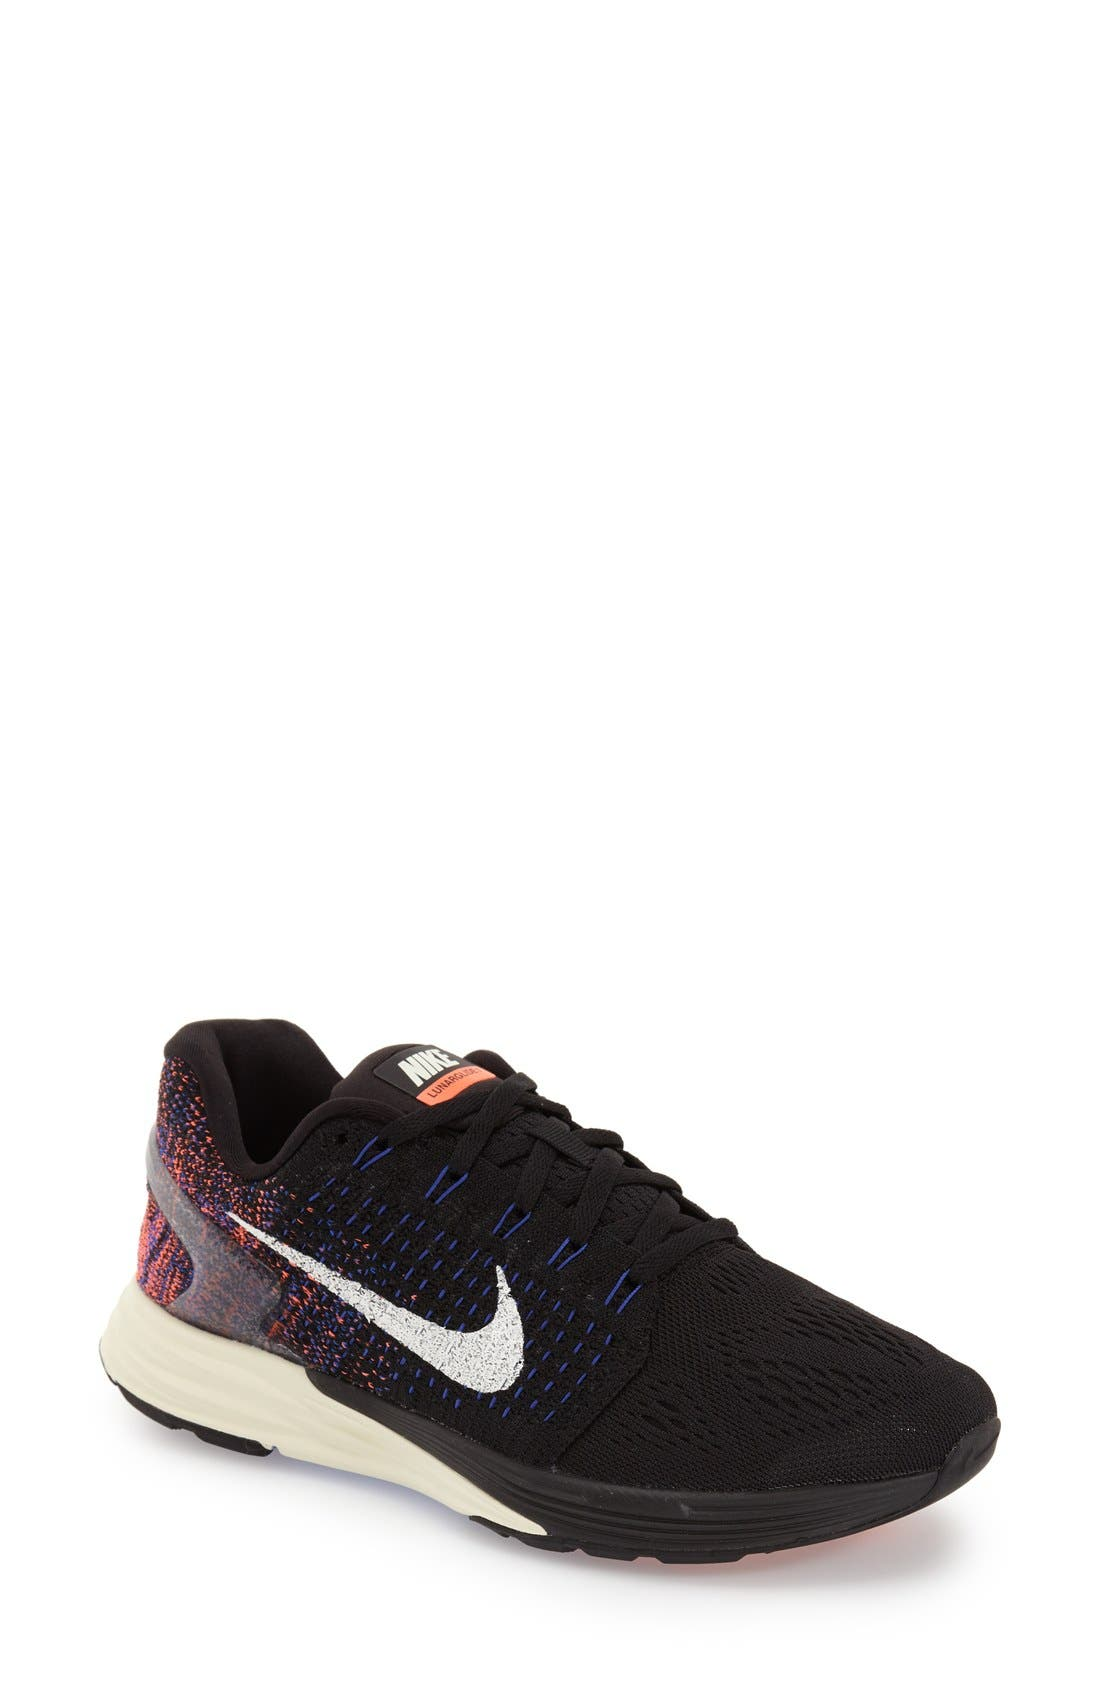 Main Image - Nike 'LunarGlide 7' Running Shoe (Women)